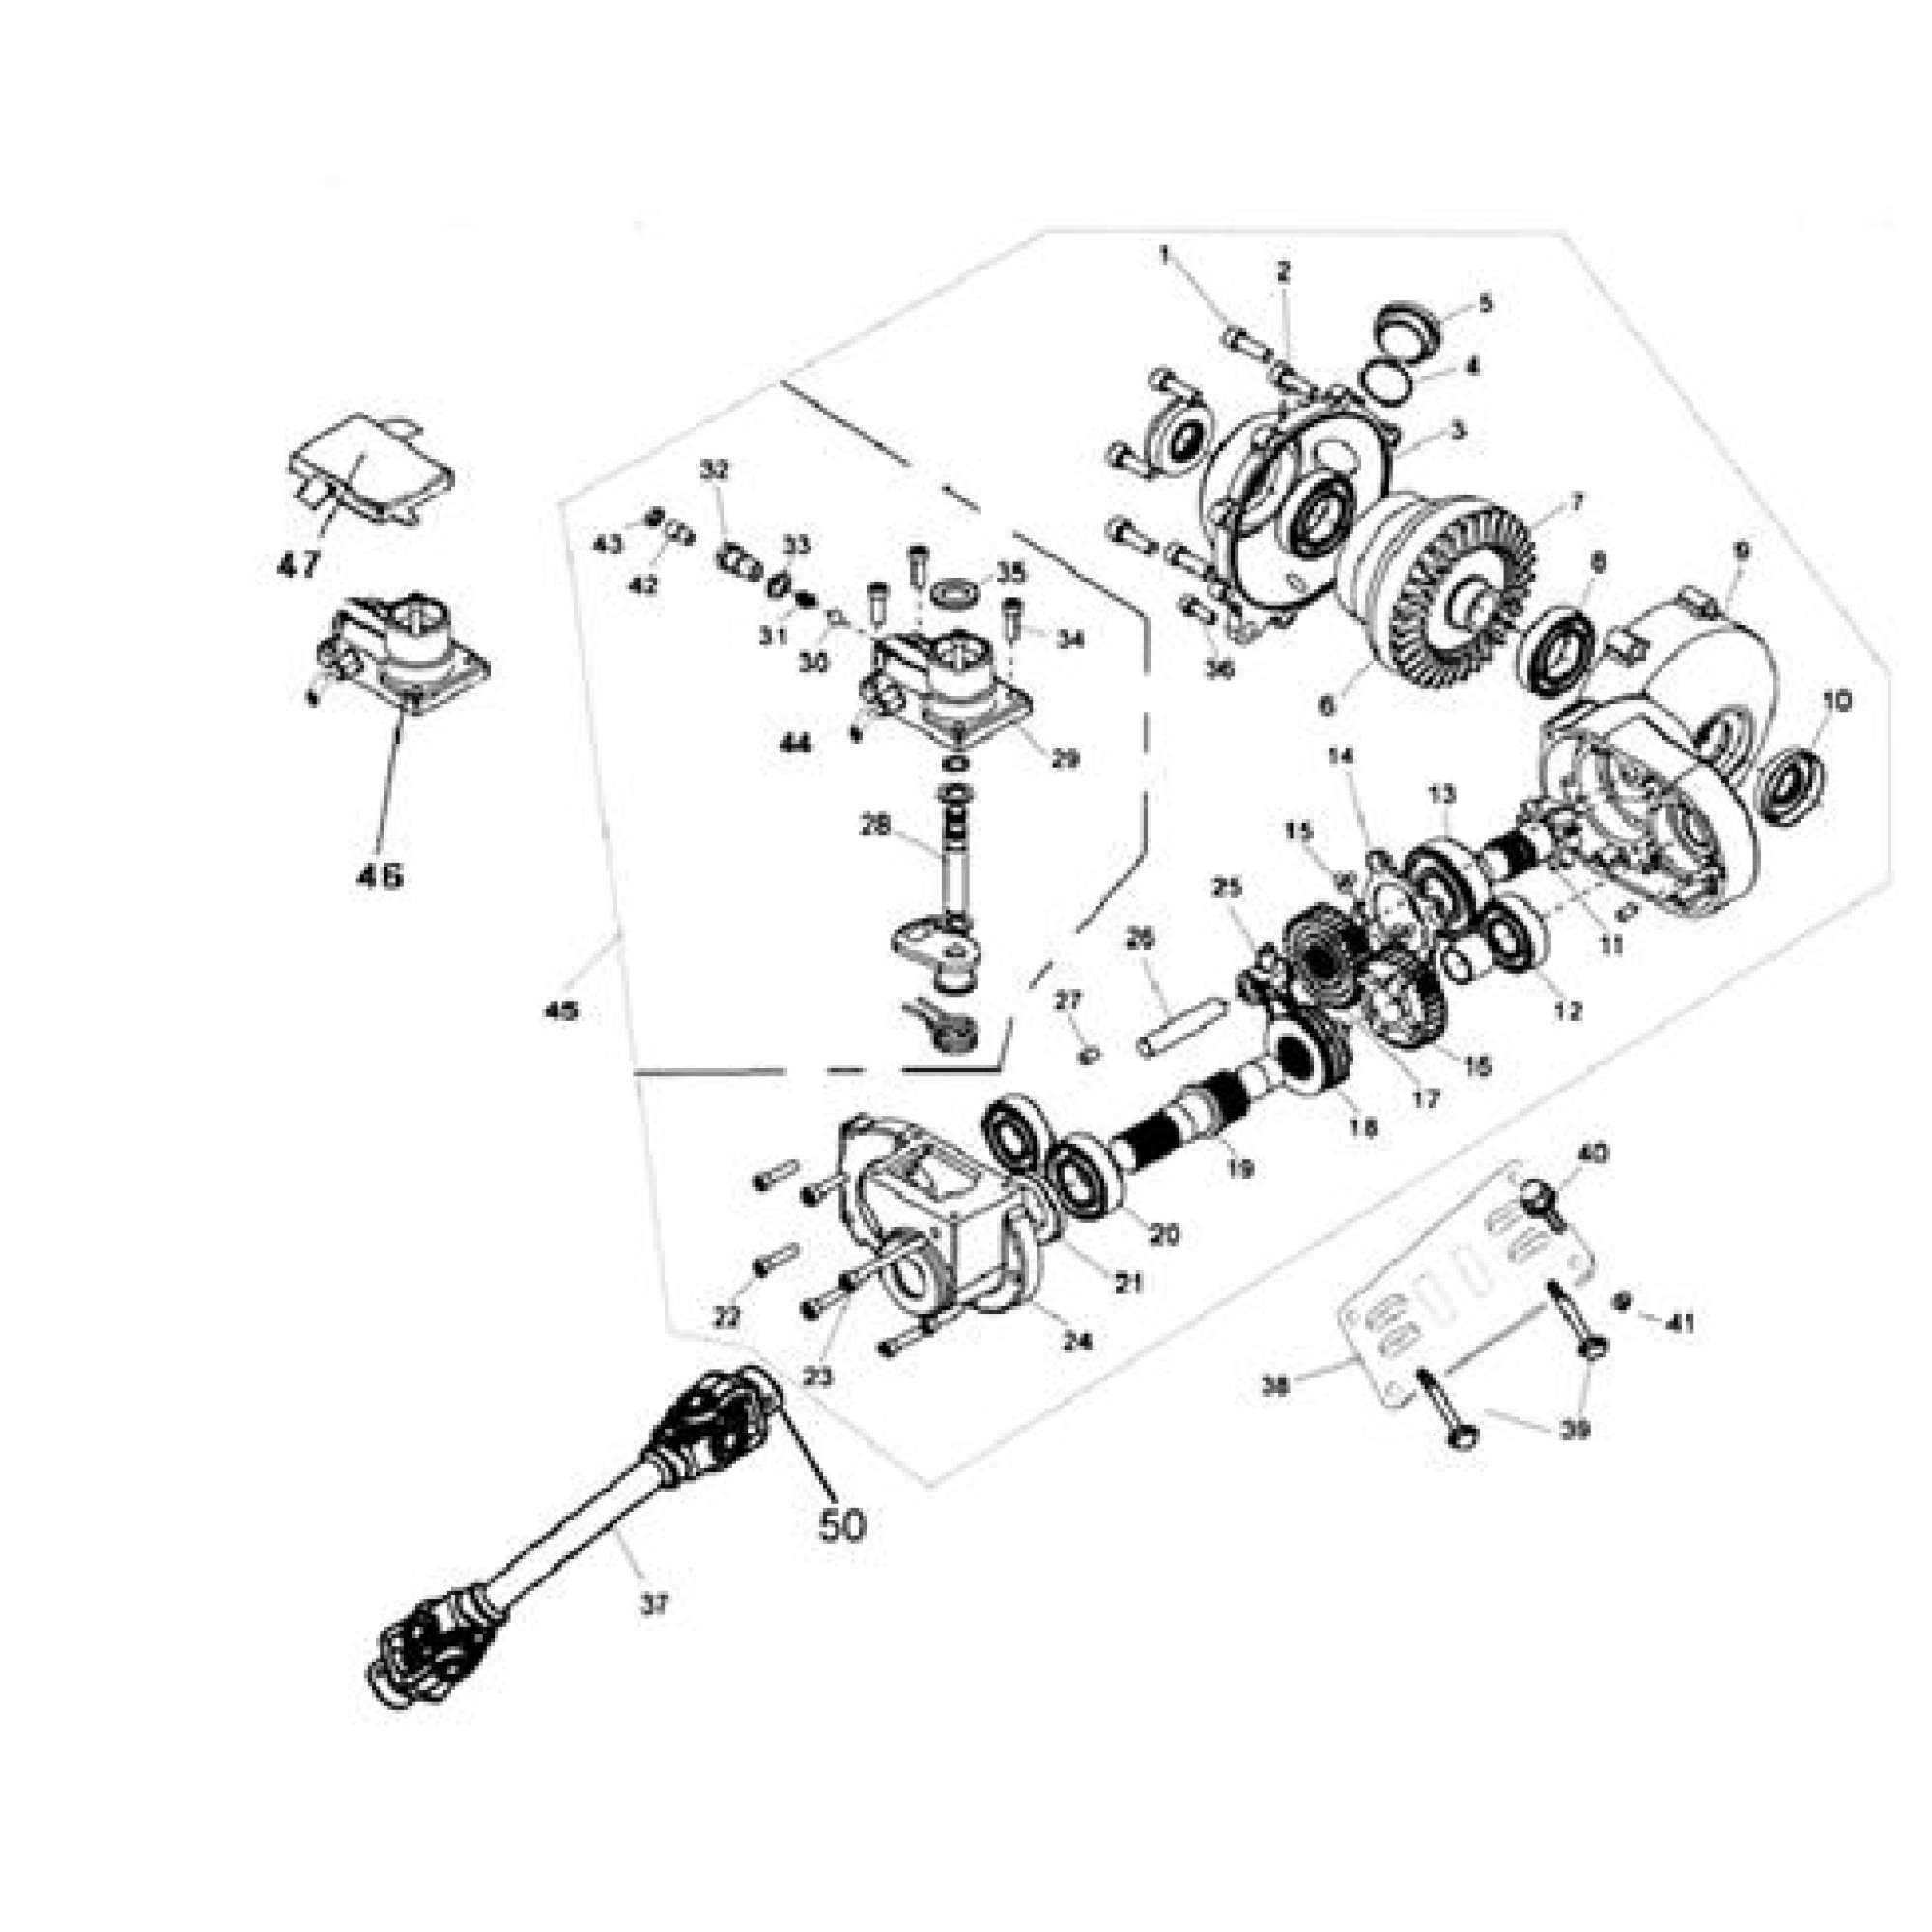 FRONT GEAR BOX